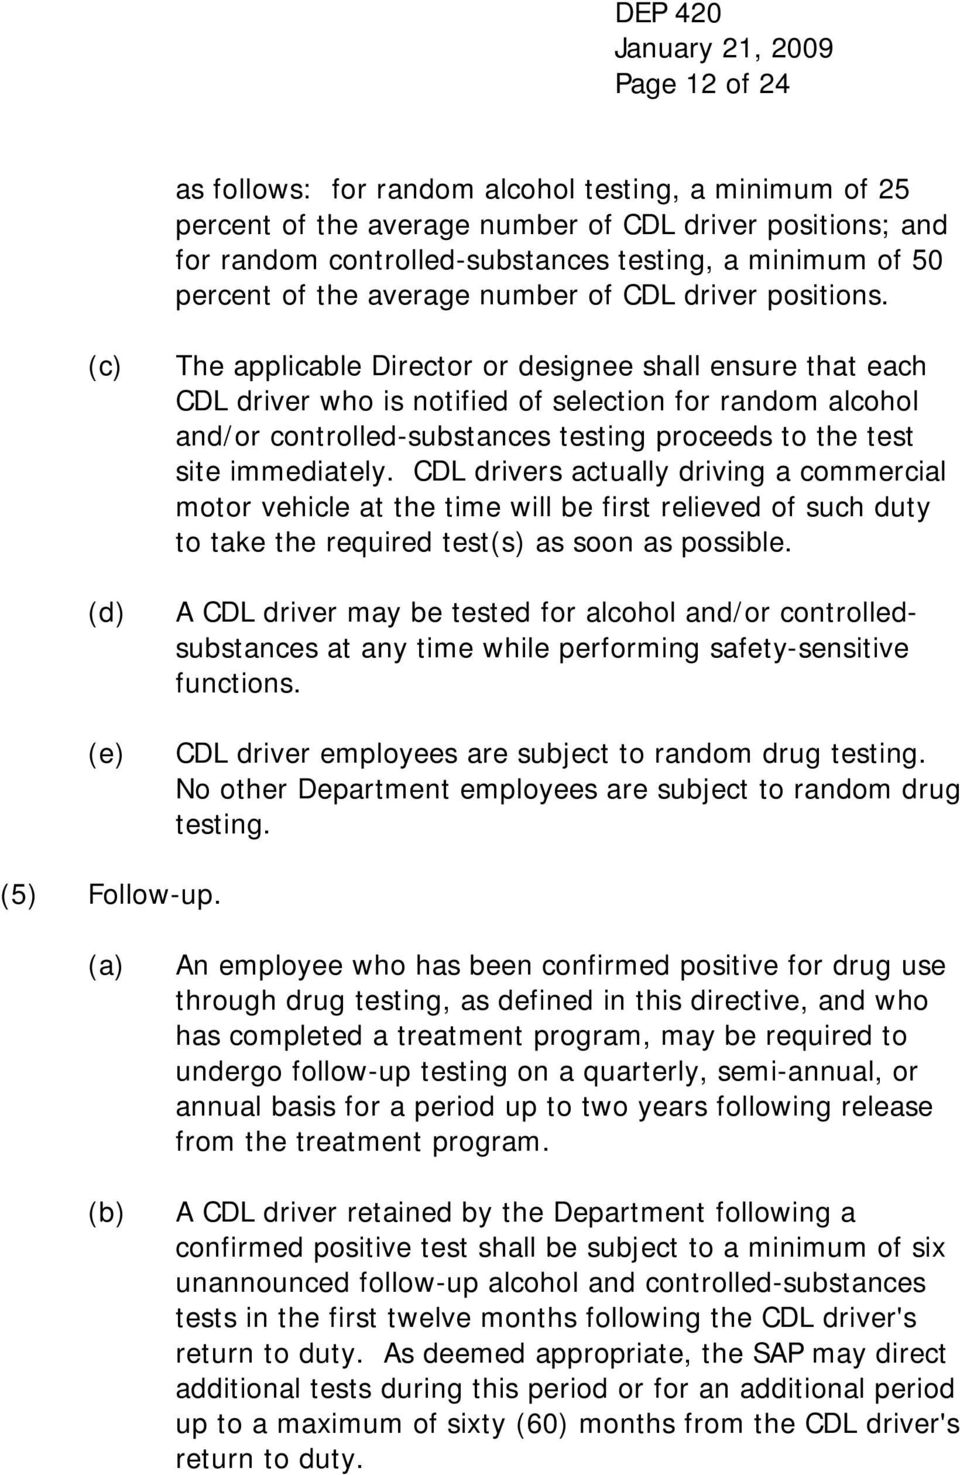 (c) (d) (e) The applicable Director or designee shall ensure that each CDL driver who is notified of selection for random alcohol and/or controlled-substances testing proceeds to the test site